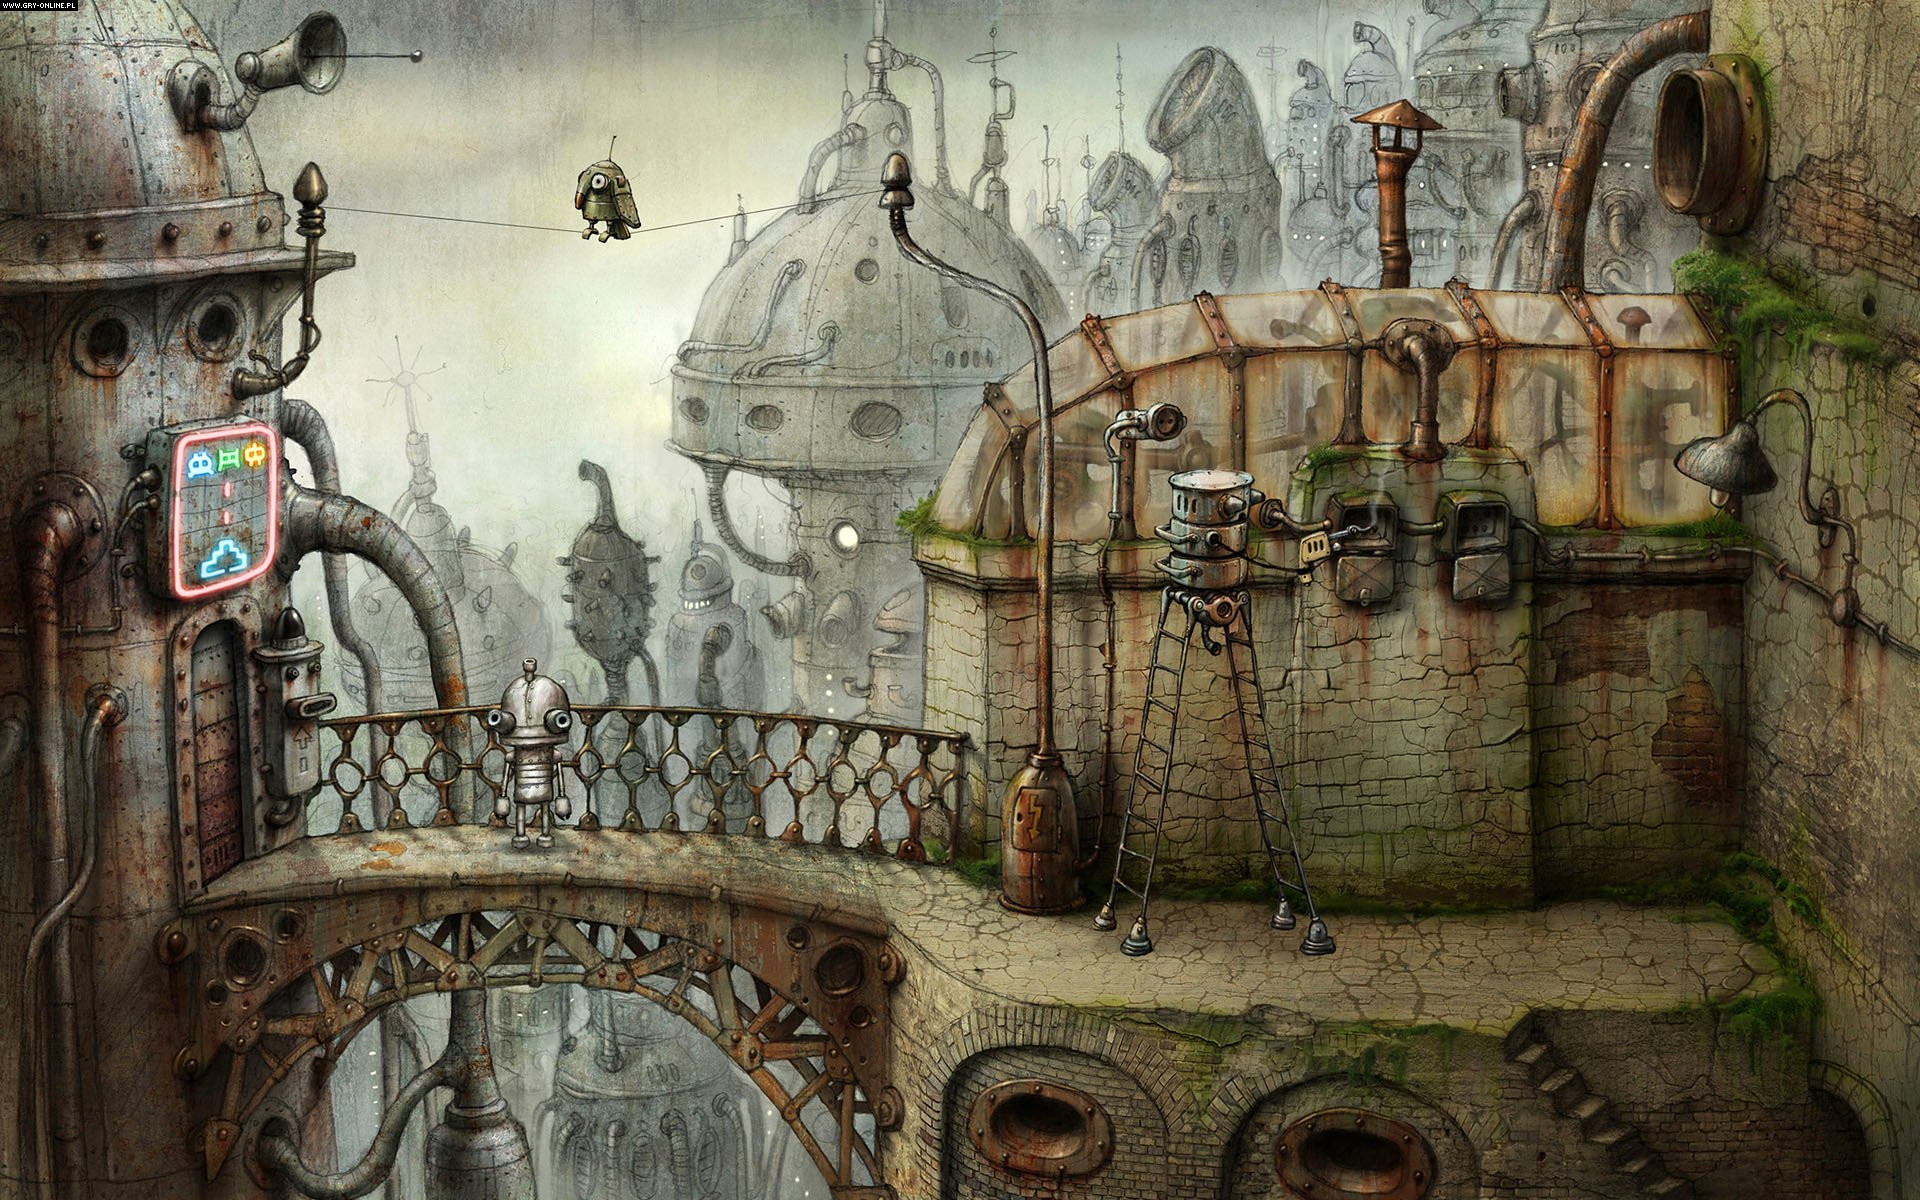 Machinarium PC, PS3, Wii, PSV, PS4, AND, iOS, WP Gry Screen 2/23, Amanita Design, Daedalic Entertainment